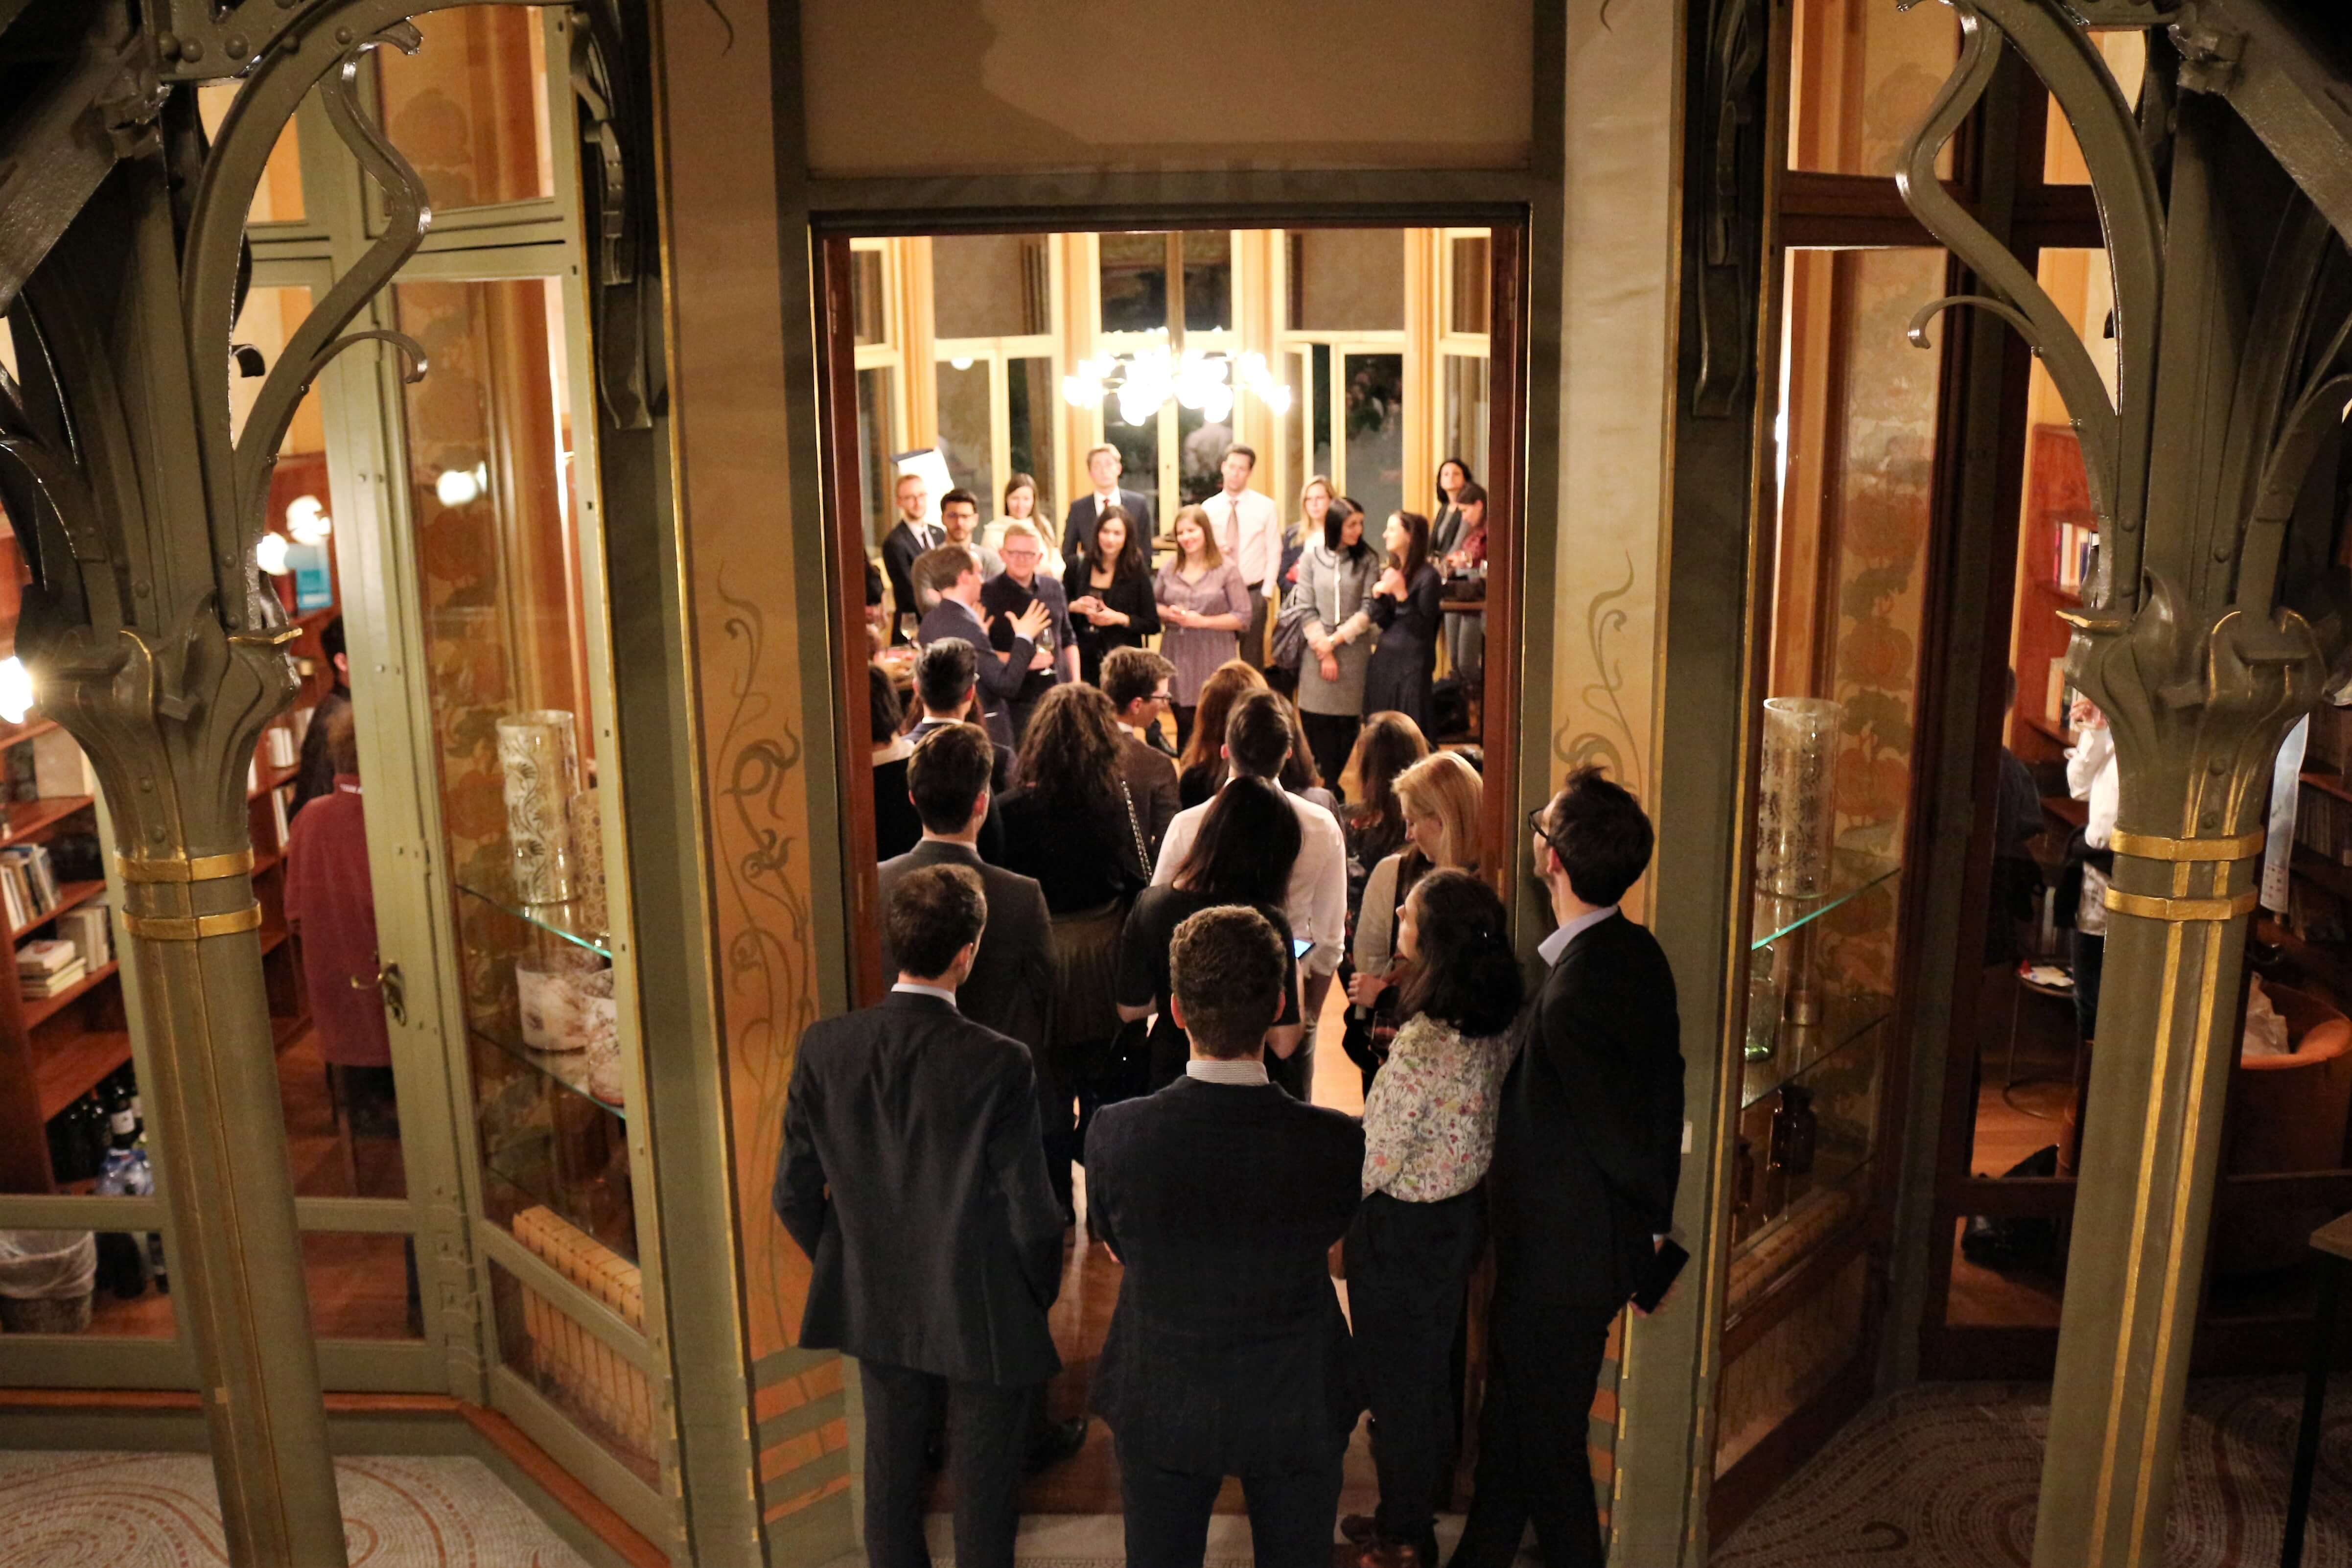 NOVE's Bubbling Up brings young Brussels professionals together